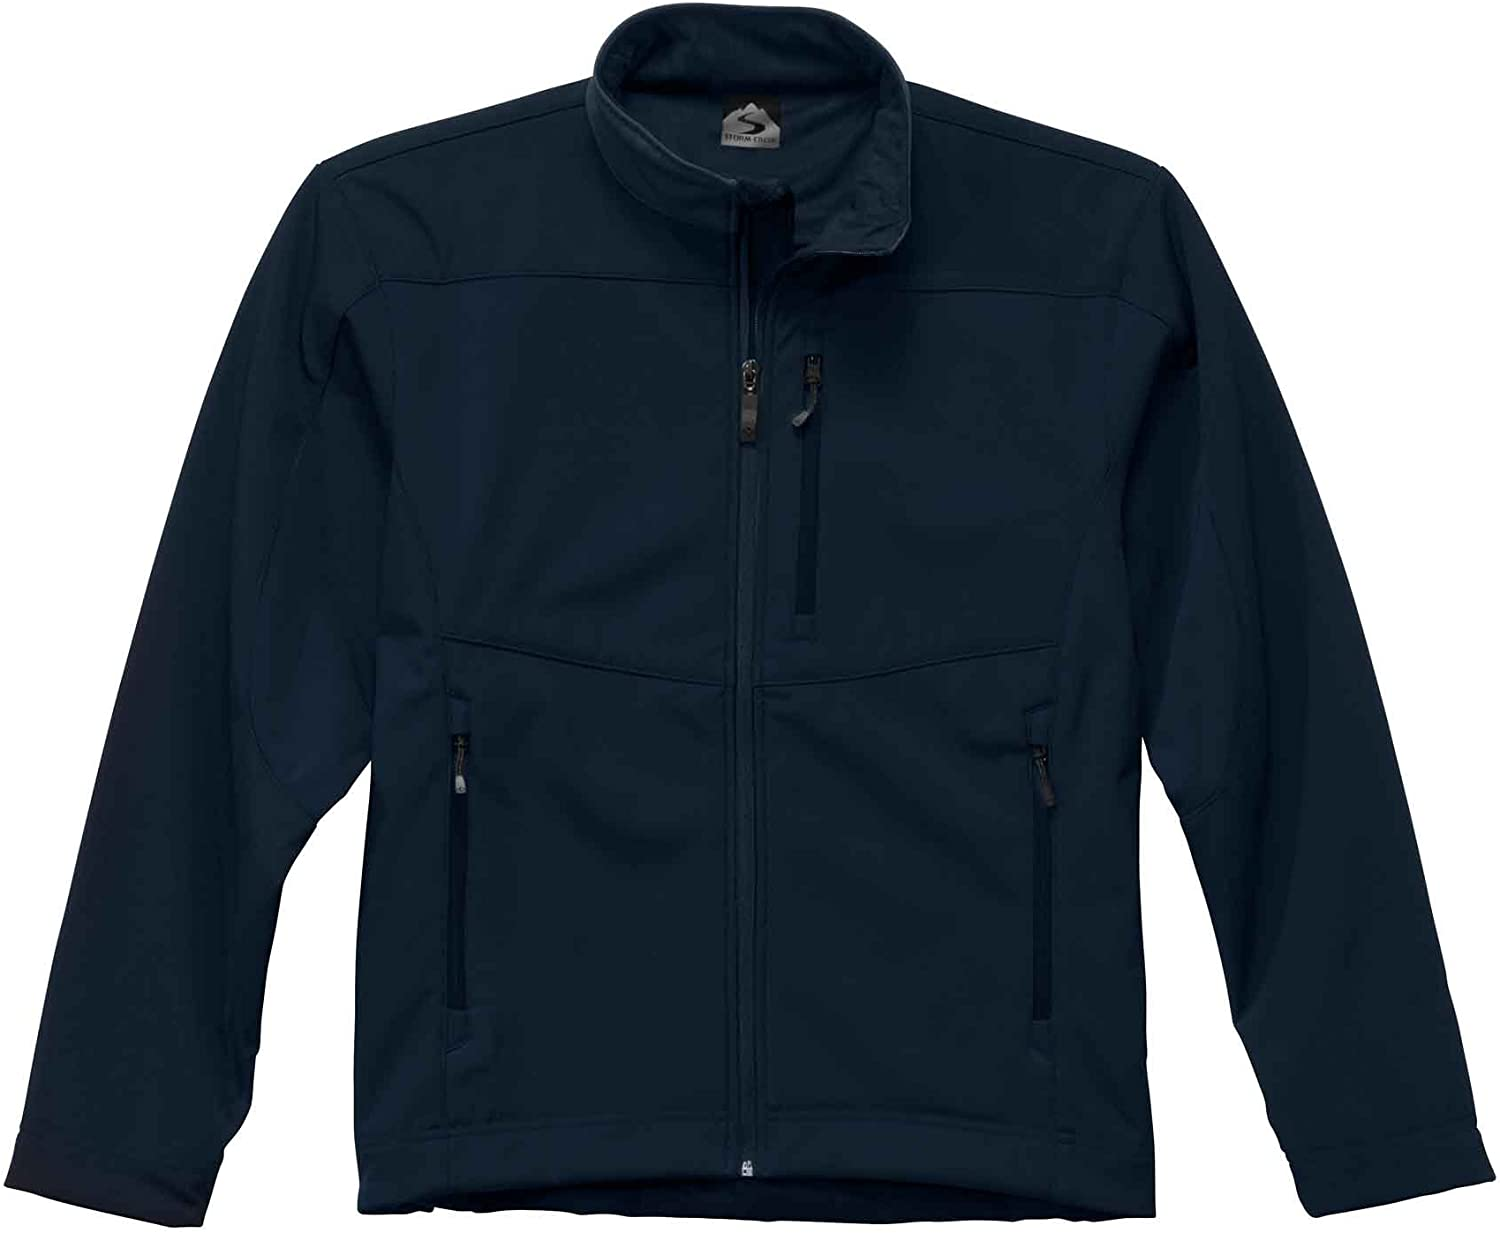 Storm excellence Creek Men's Waterproof Soft-Shell Breathable Fleece High quality new Jacket